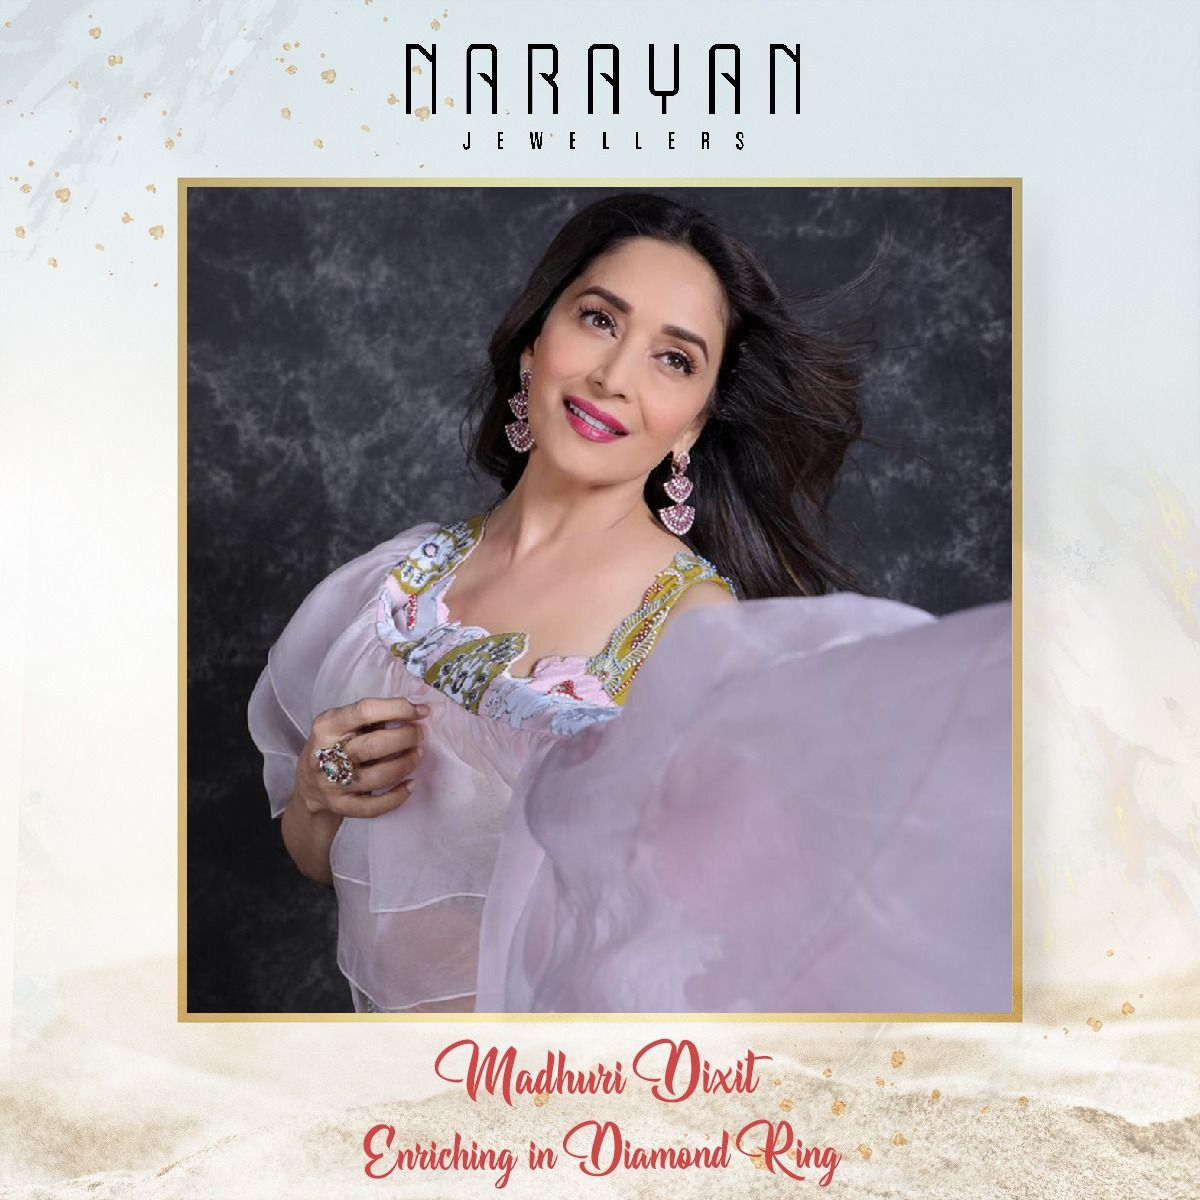 120 Madhuri Dixit Latest Pics, Full Hd Images And Photo -7362